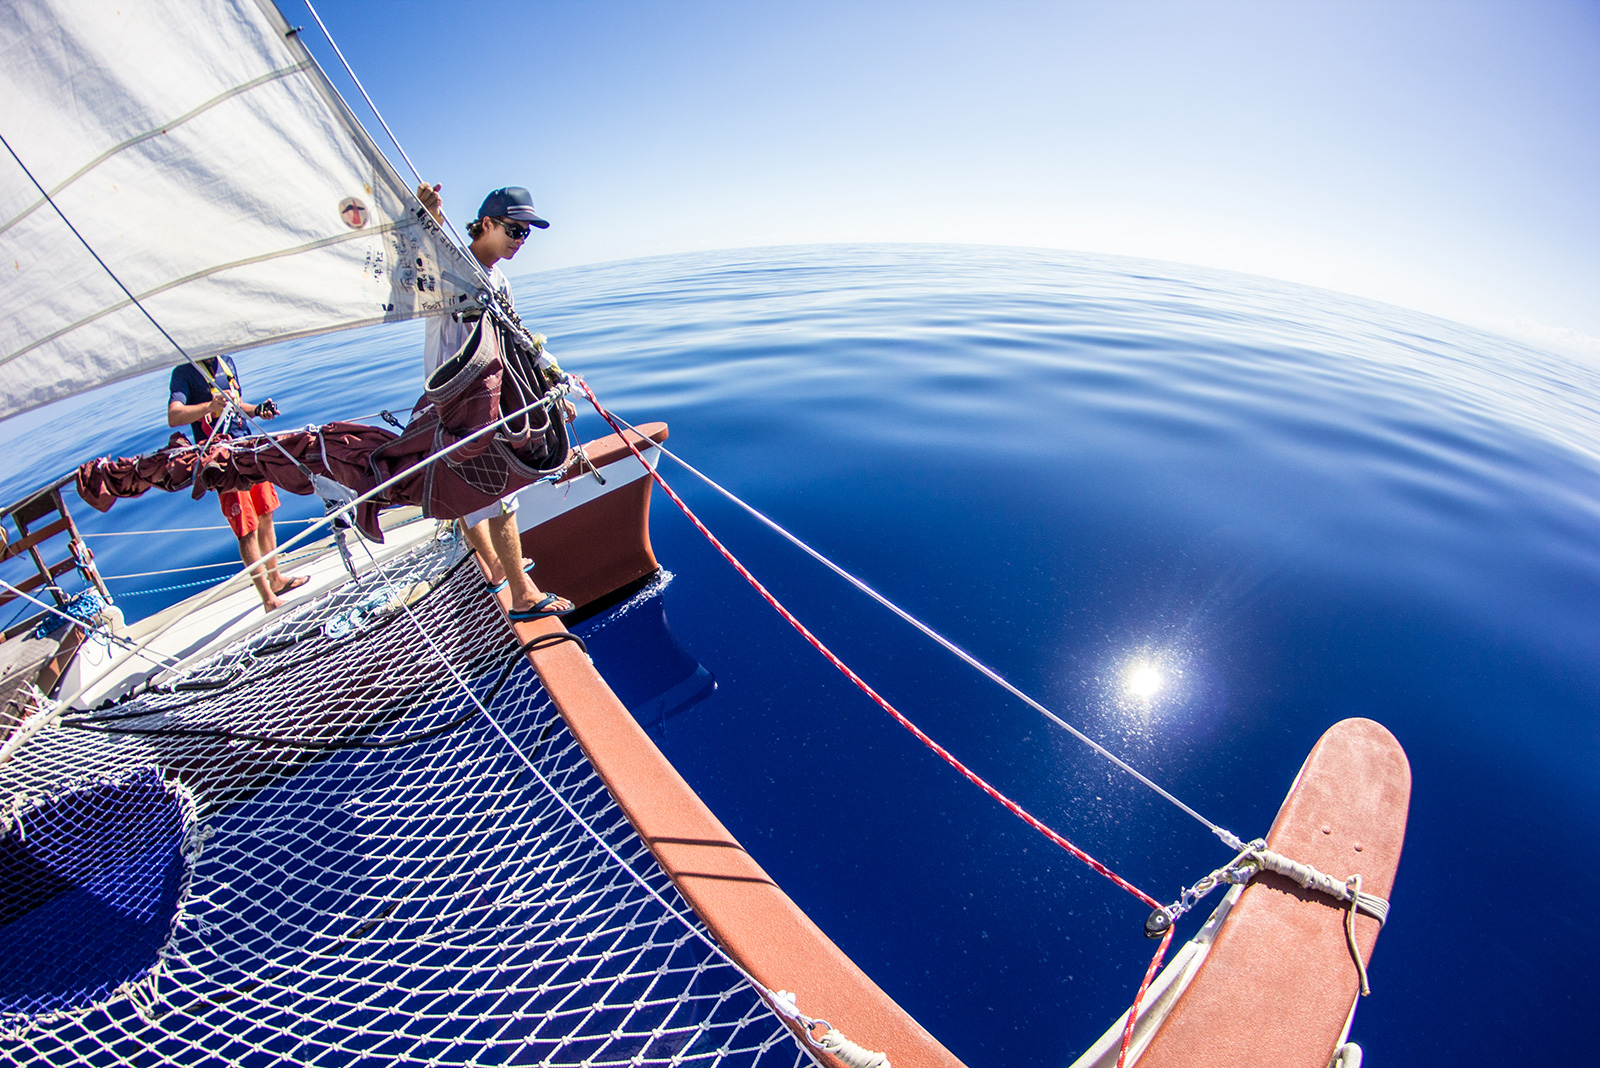 Hokulea Ocean Conditions